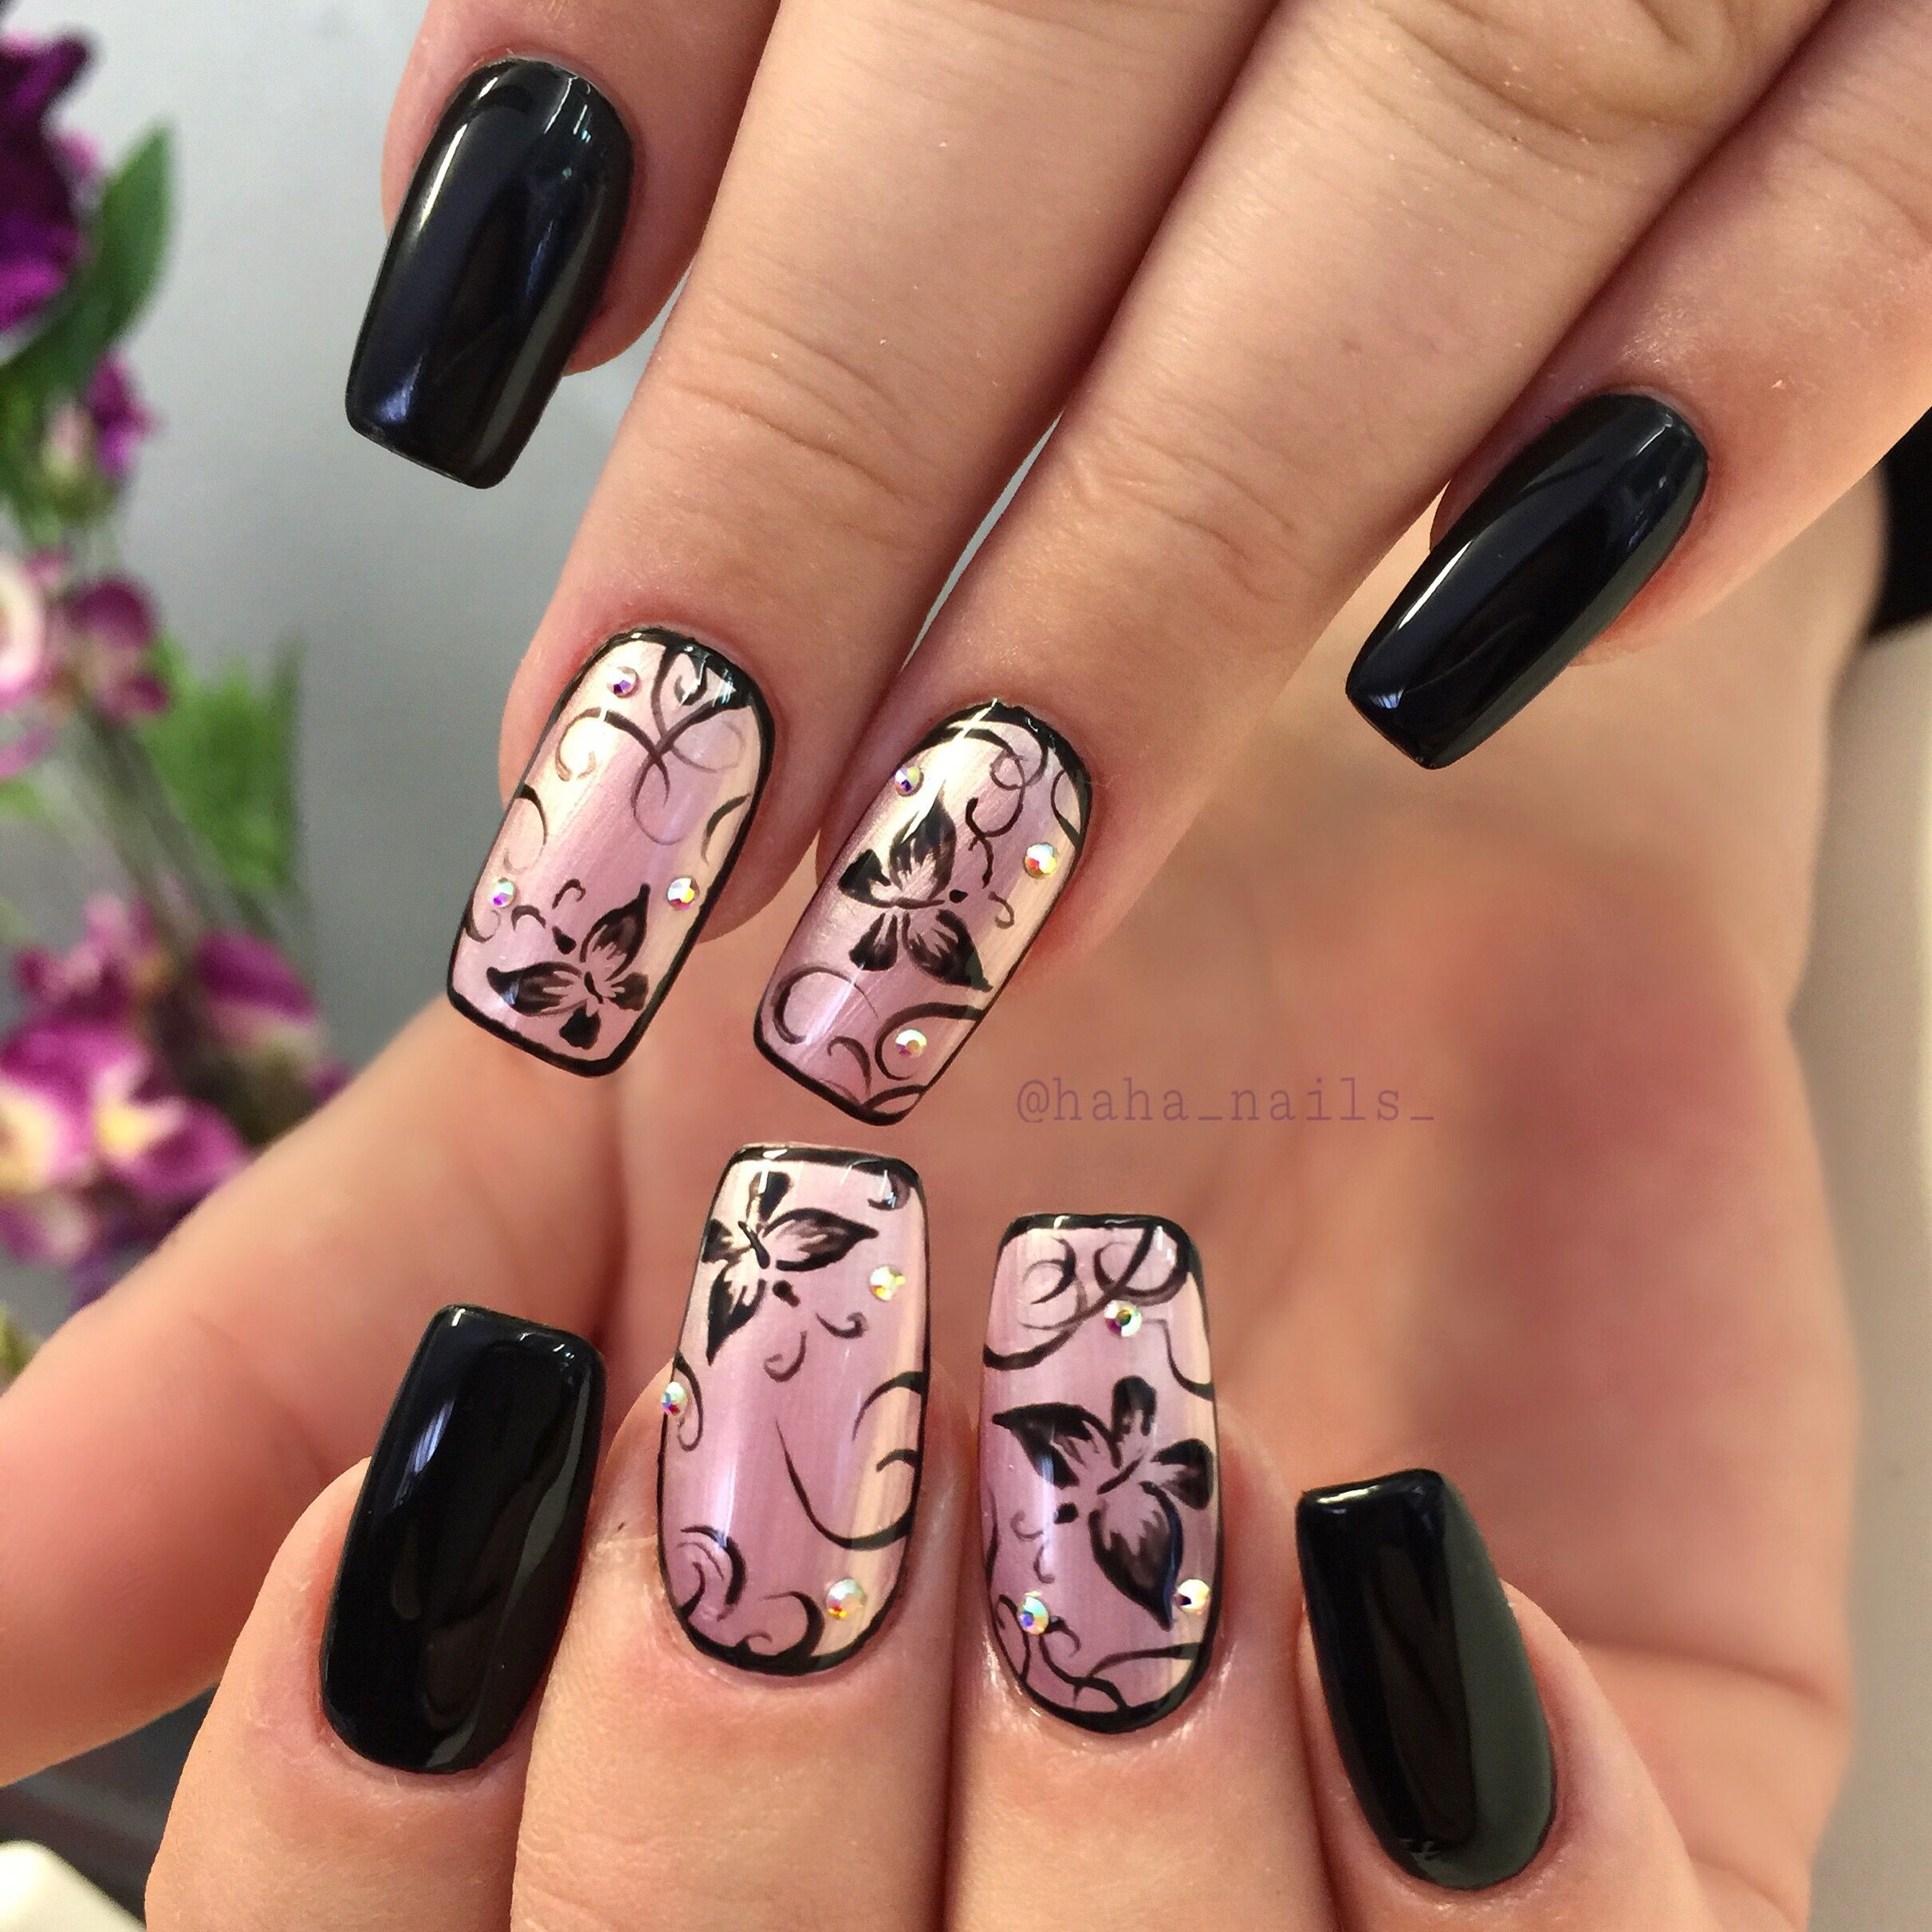 Pin by Hailey Craner on makeup hair nails | Pinterest | Butterfly ...